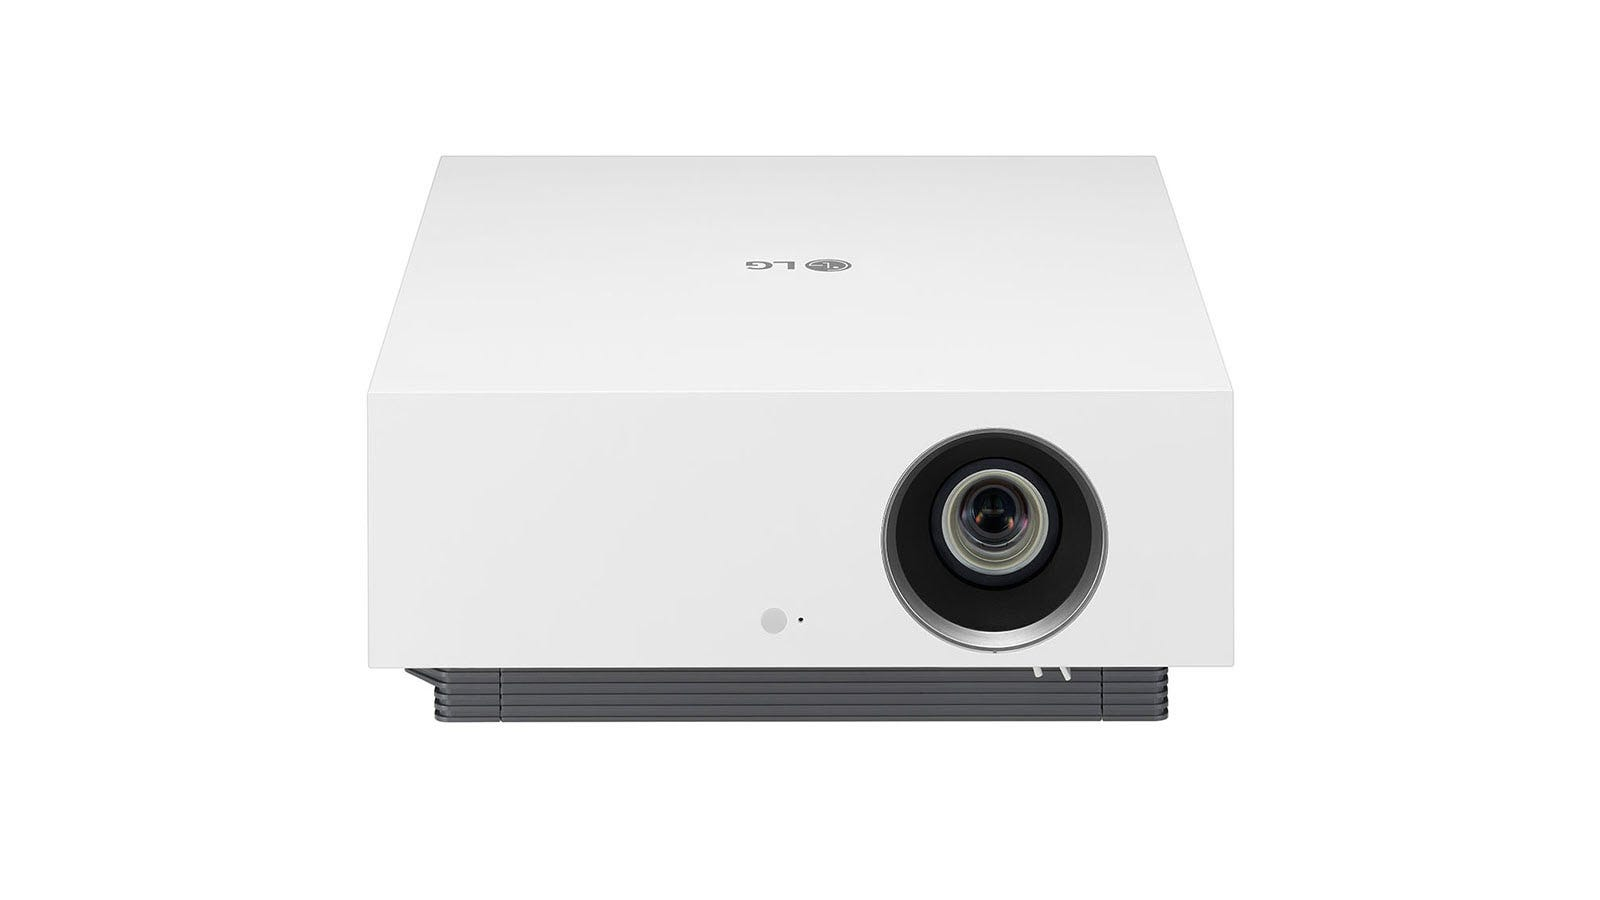 A closeup of the LG CineBeam projector